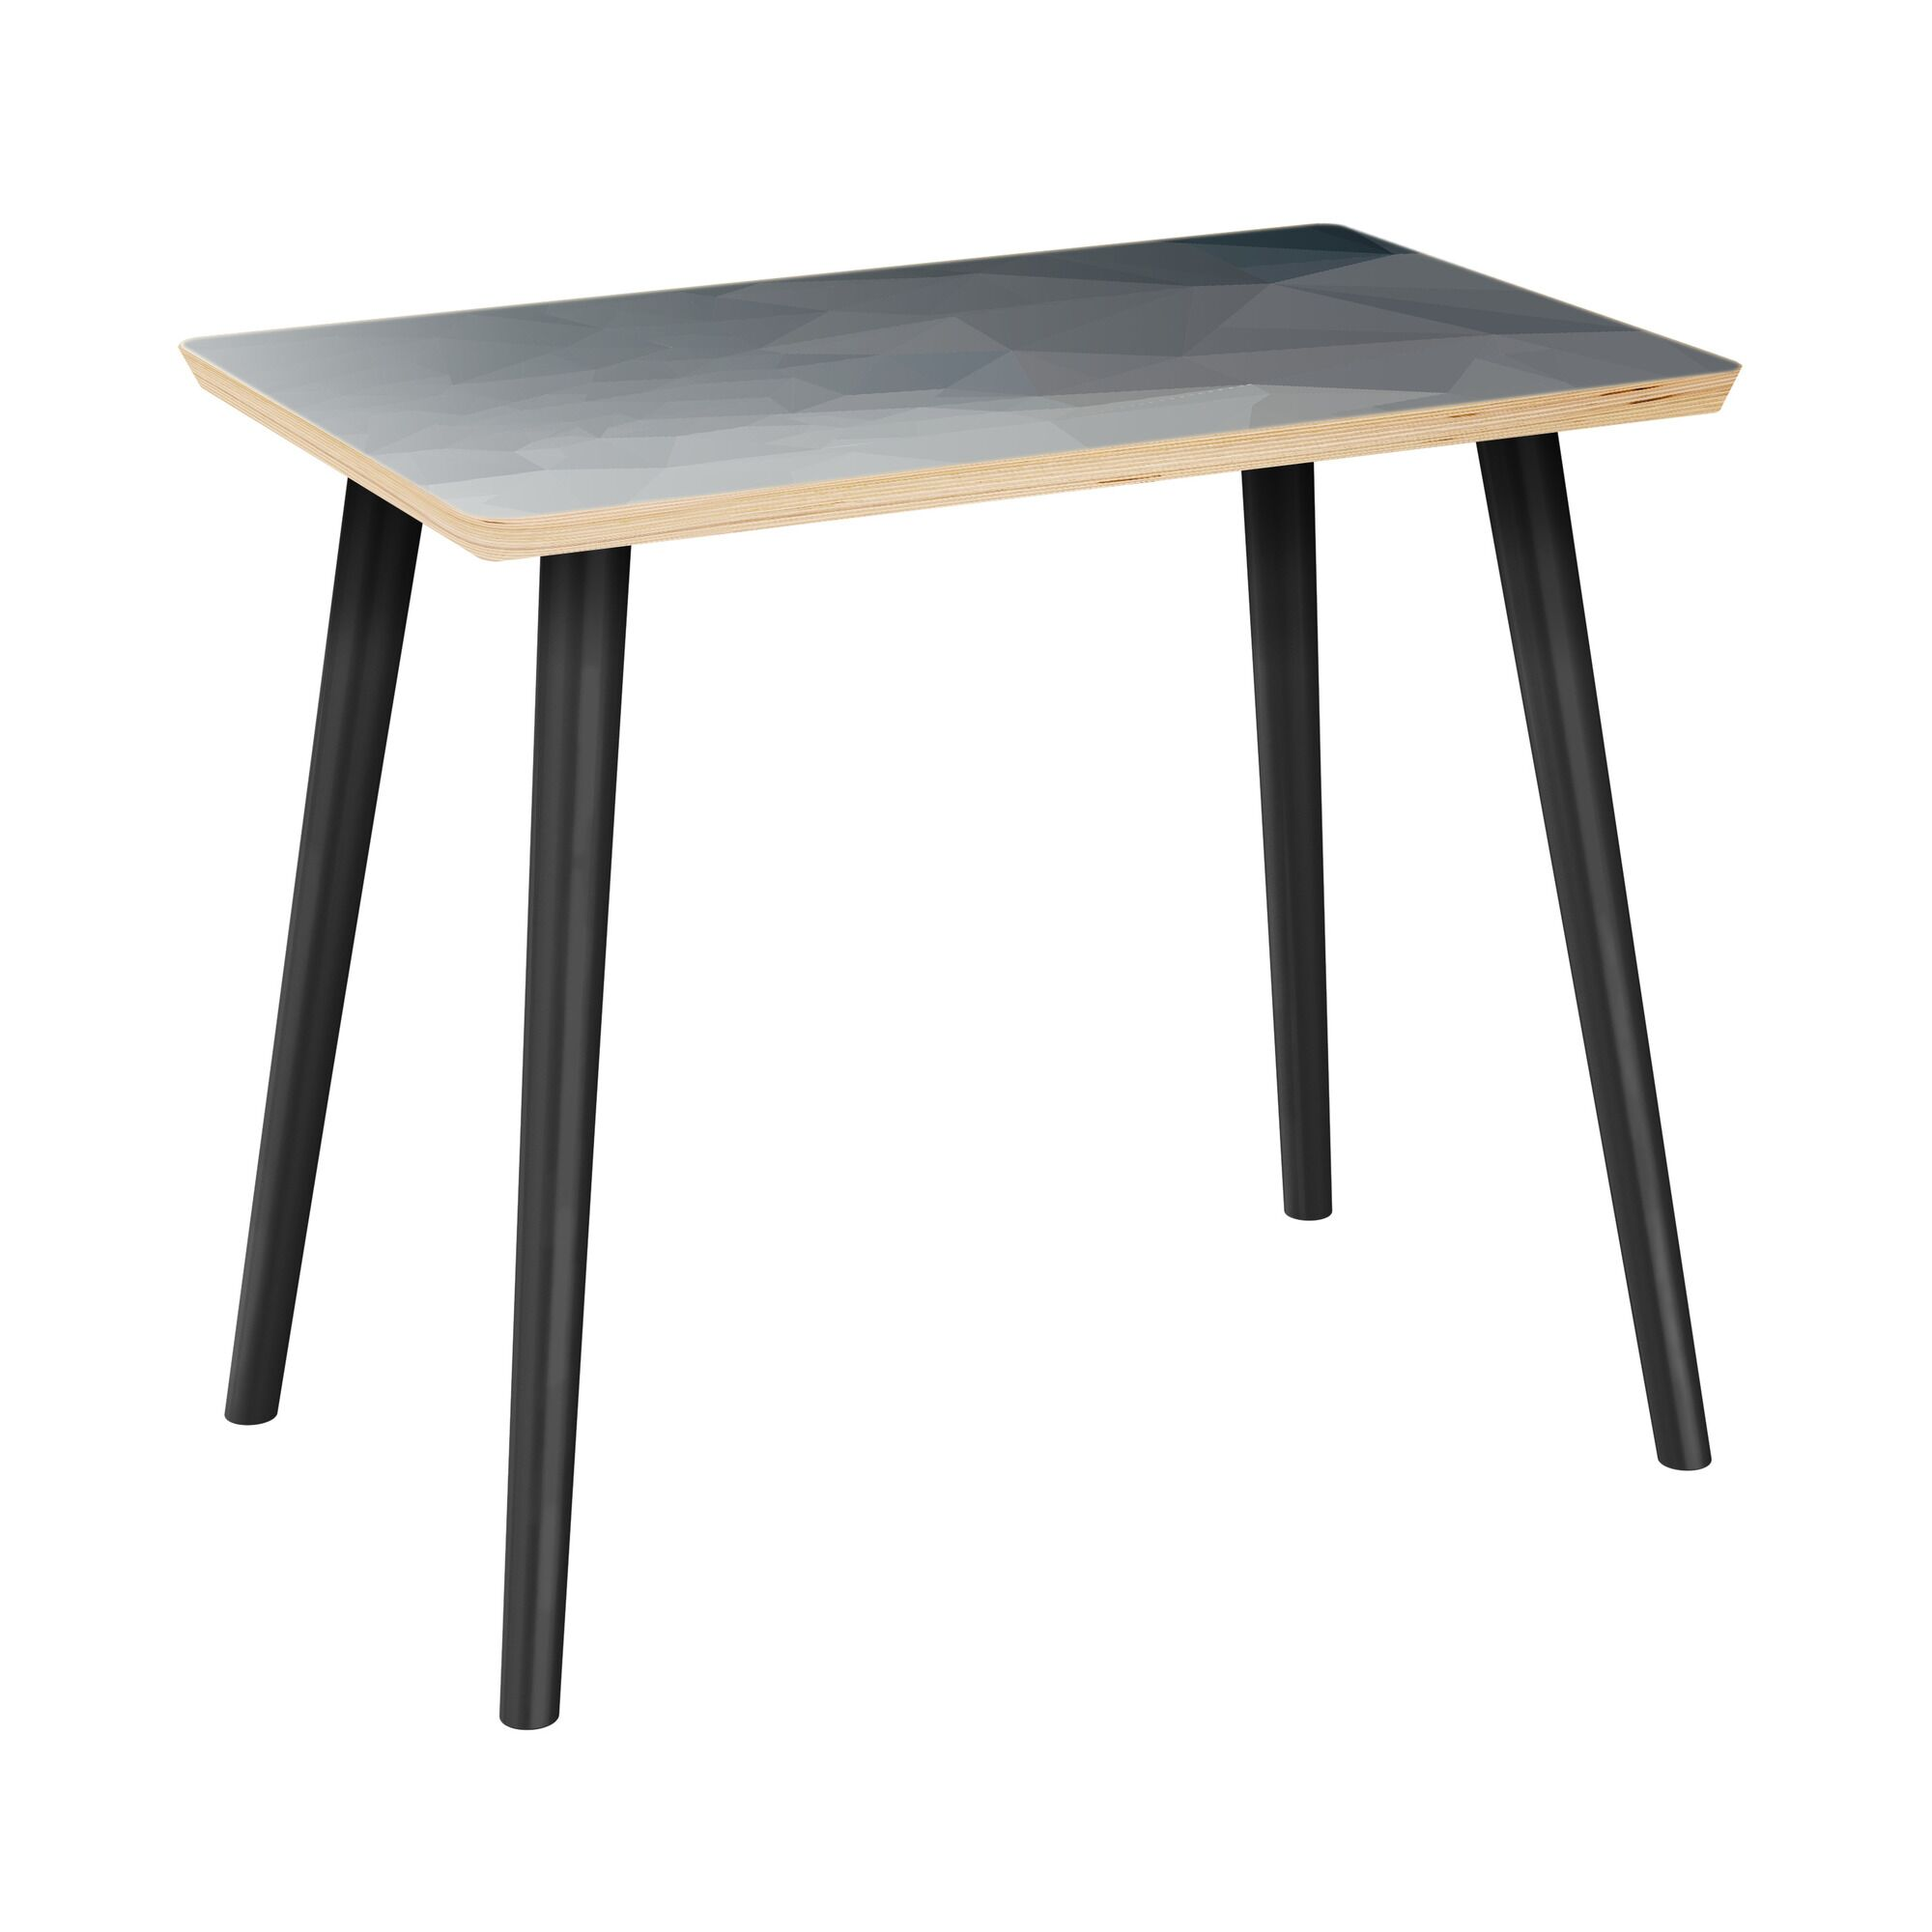 Lake Park End Table Table Top Boarder Color: Natural, Table Base Color: Black, Table Top Color: Blue